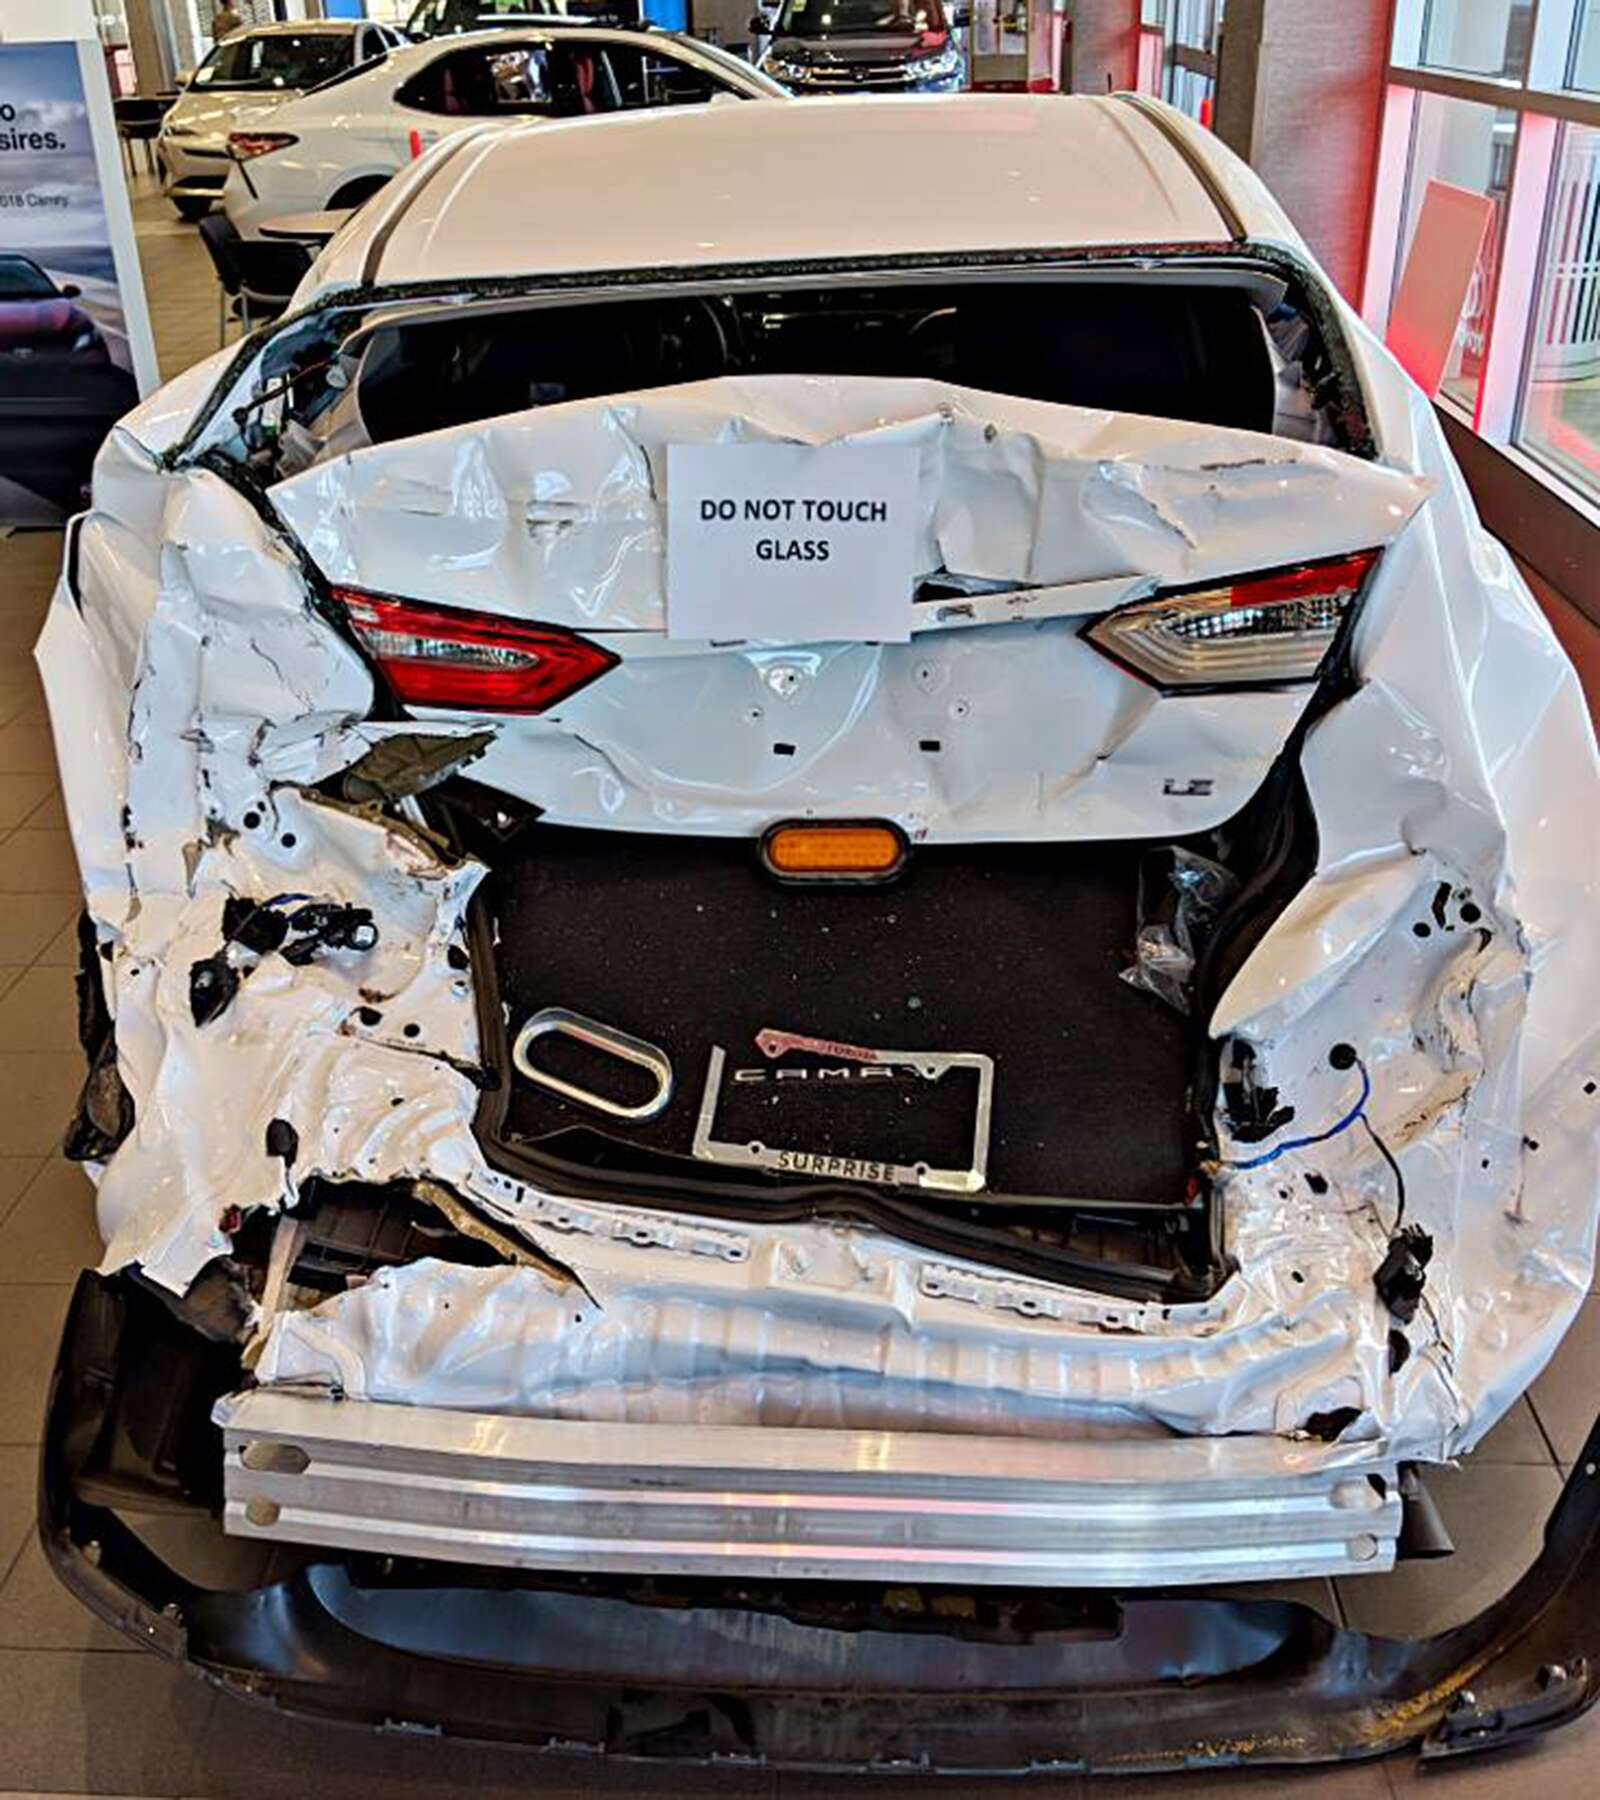 Toyota Dealership Displays 2018 Toyota Camry That Got Rear Ended By